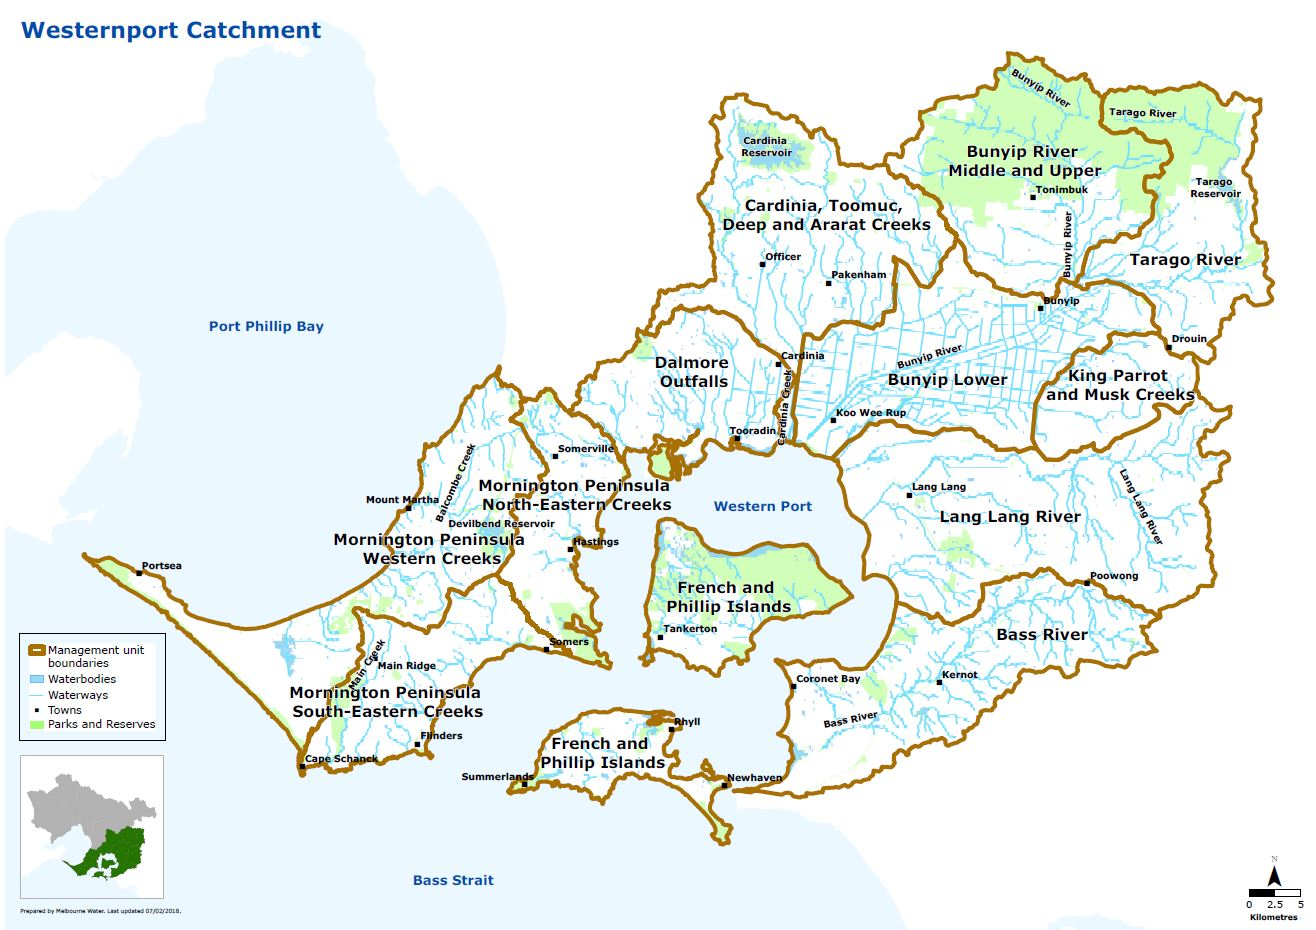 Map of Westernport catchment